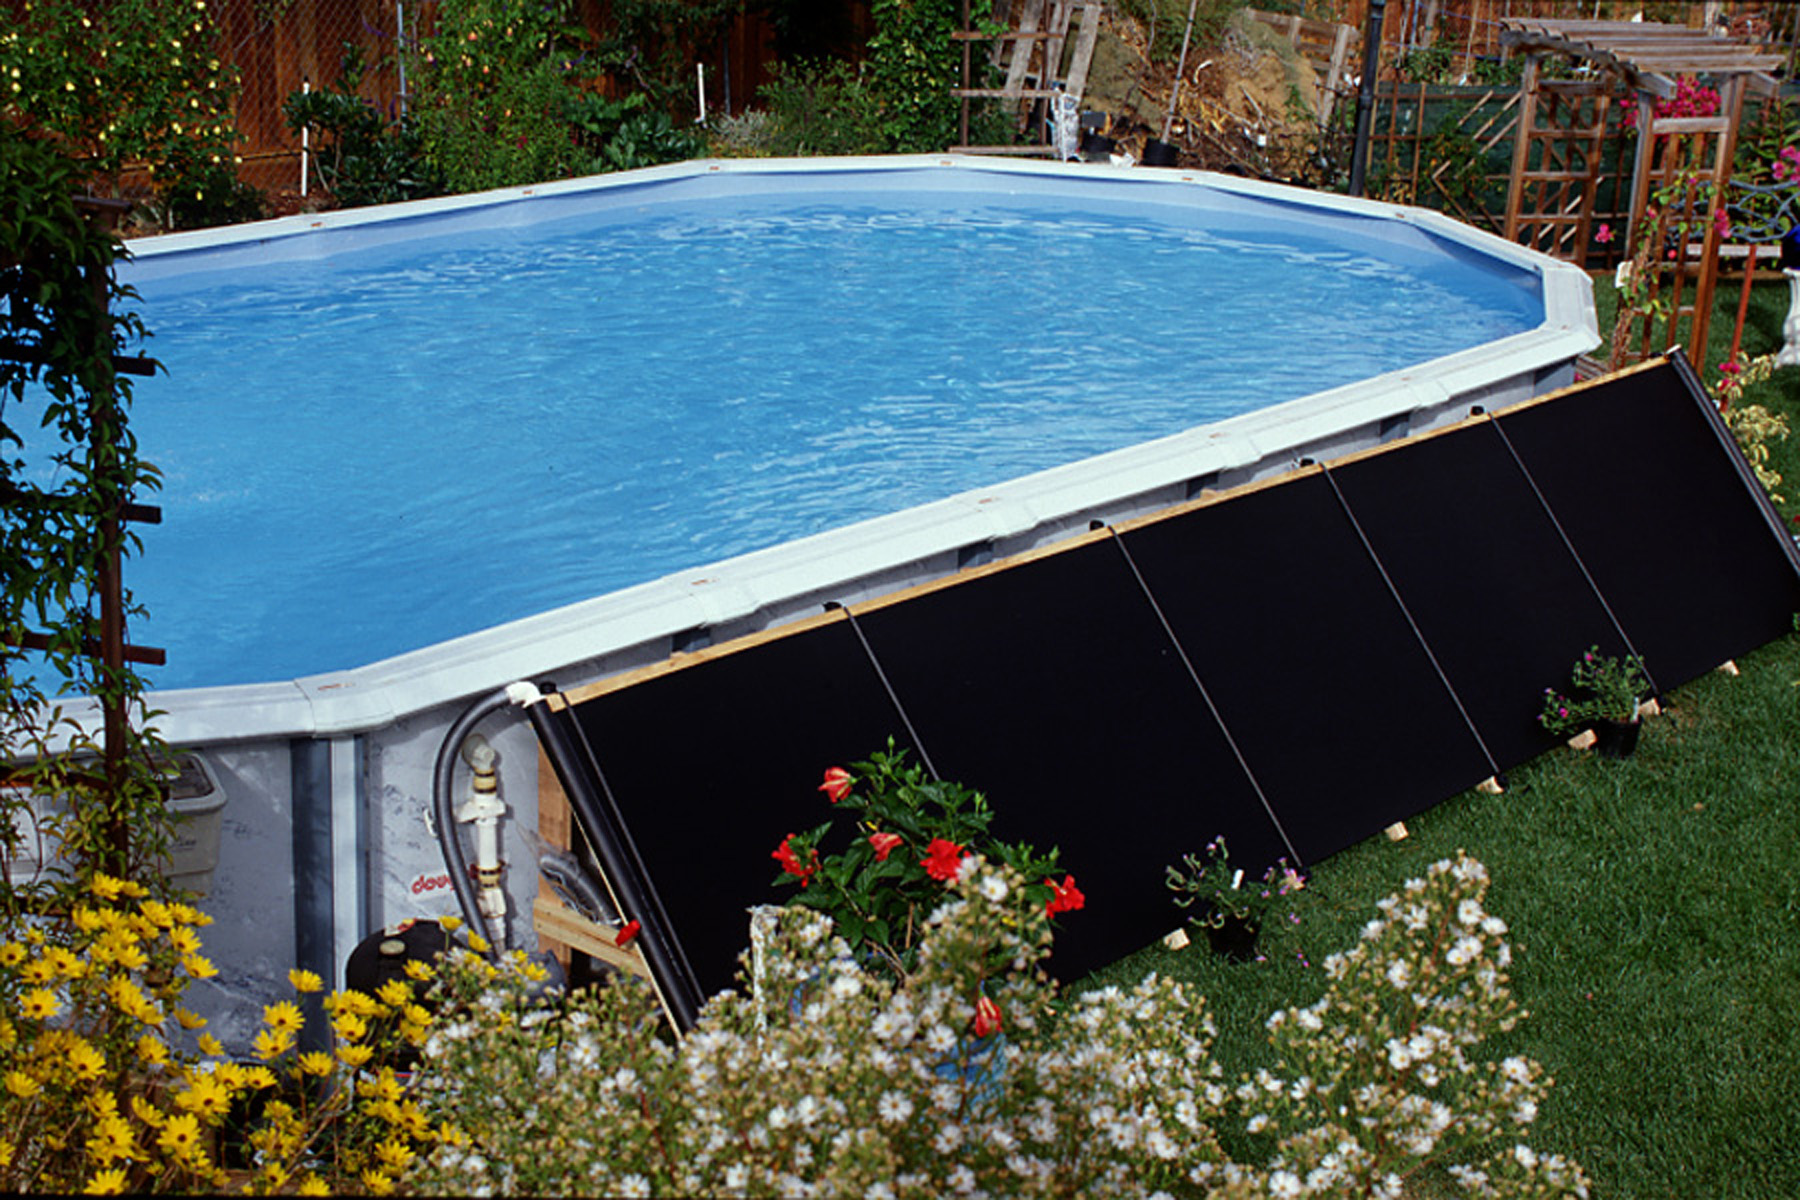 New fafco solar swimming pool above ground solar heating panel kit 4 39 x 20 39 ebay for Solar heaters for swimming pools